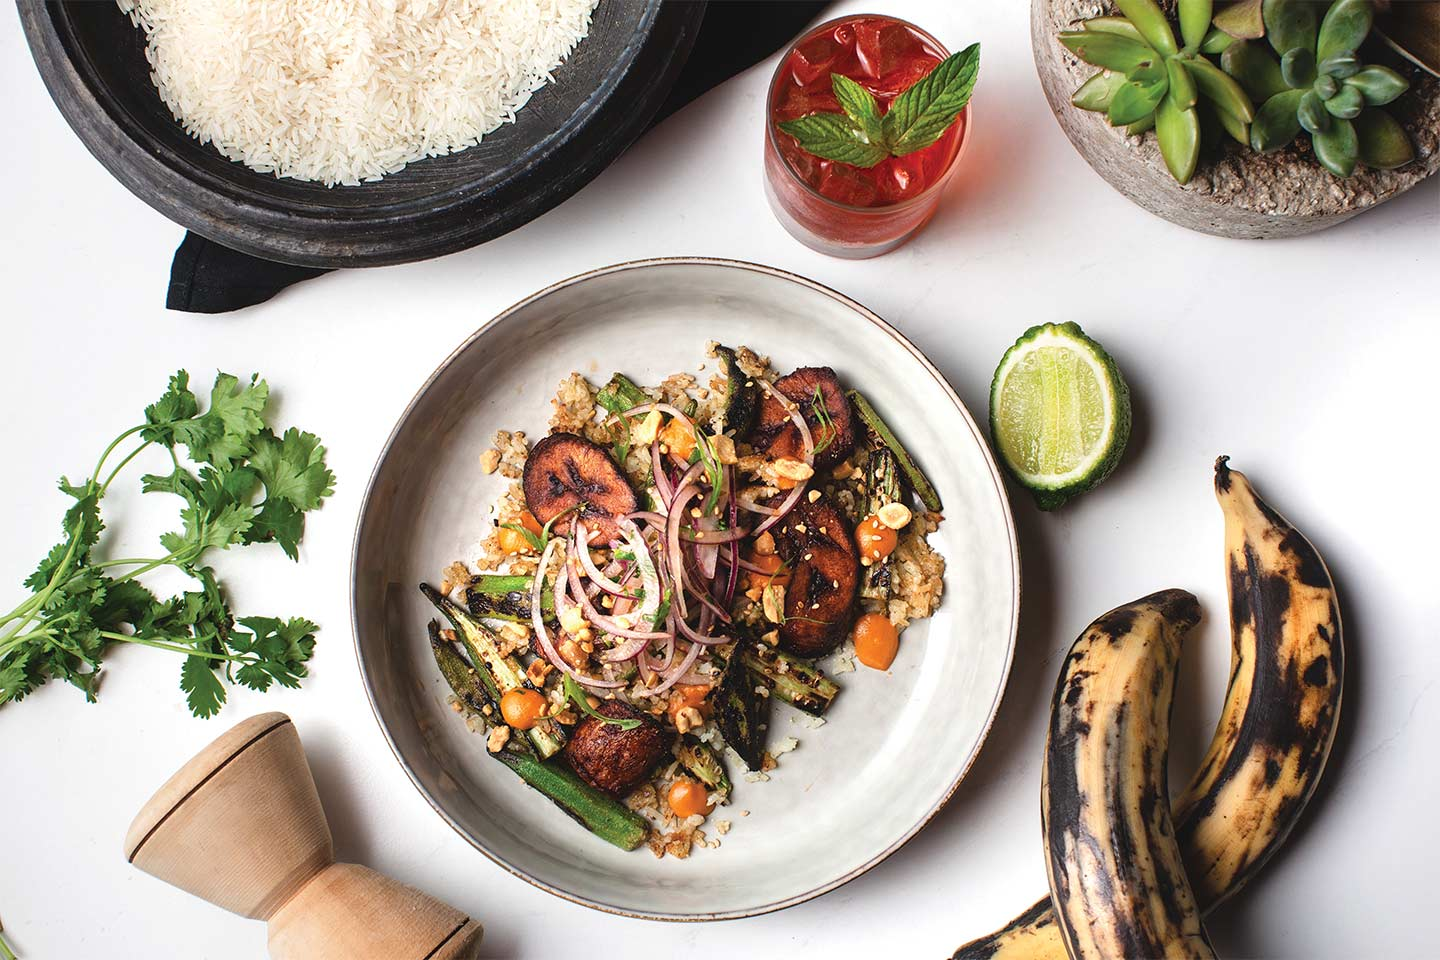 west african shito over charred okra, coconut rice, and sweet plantains